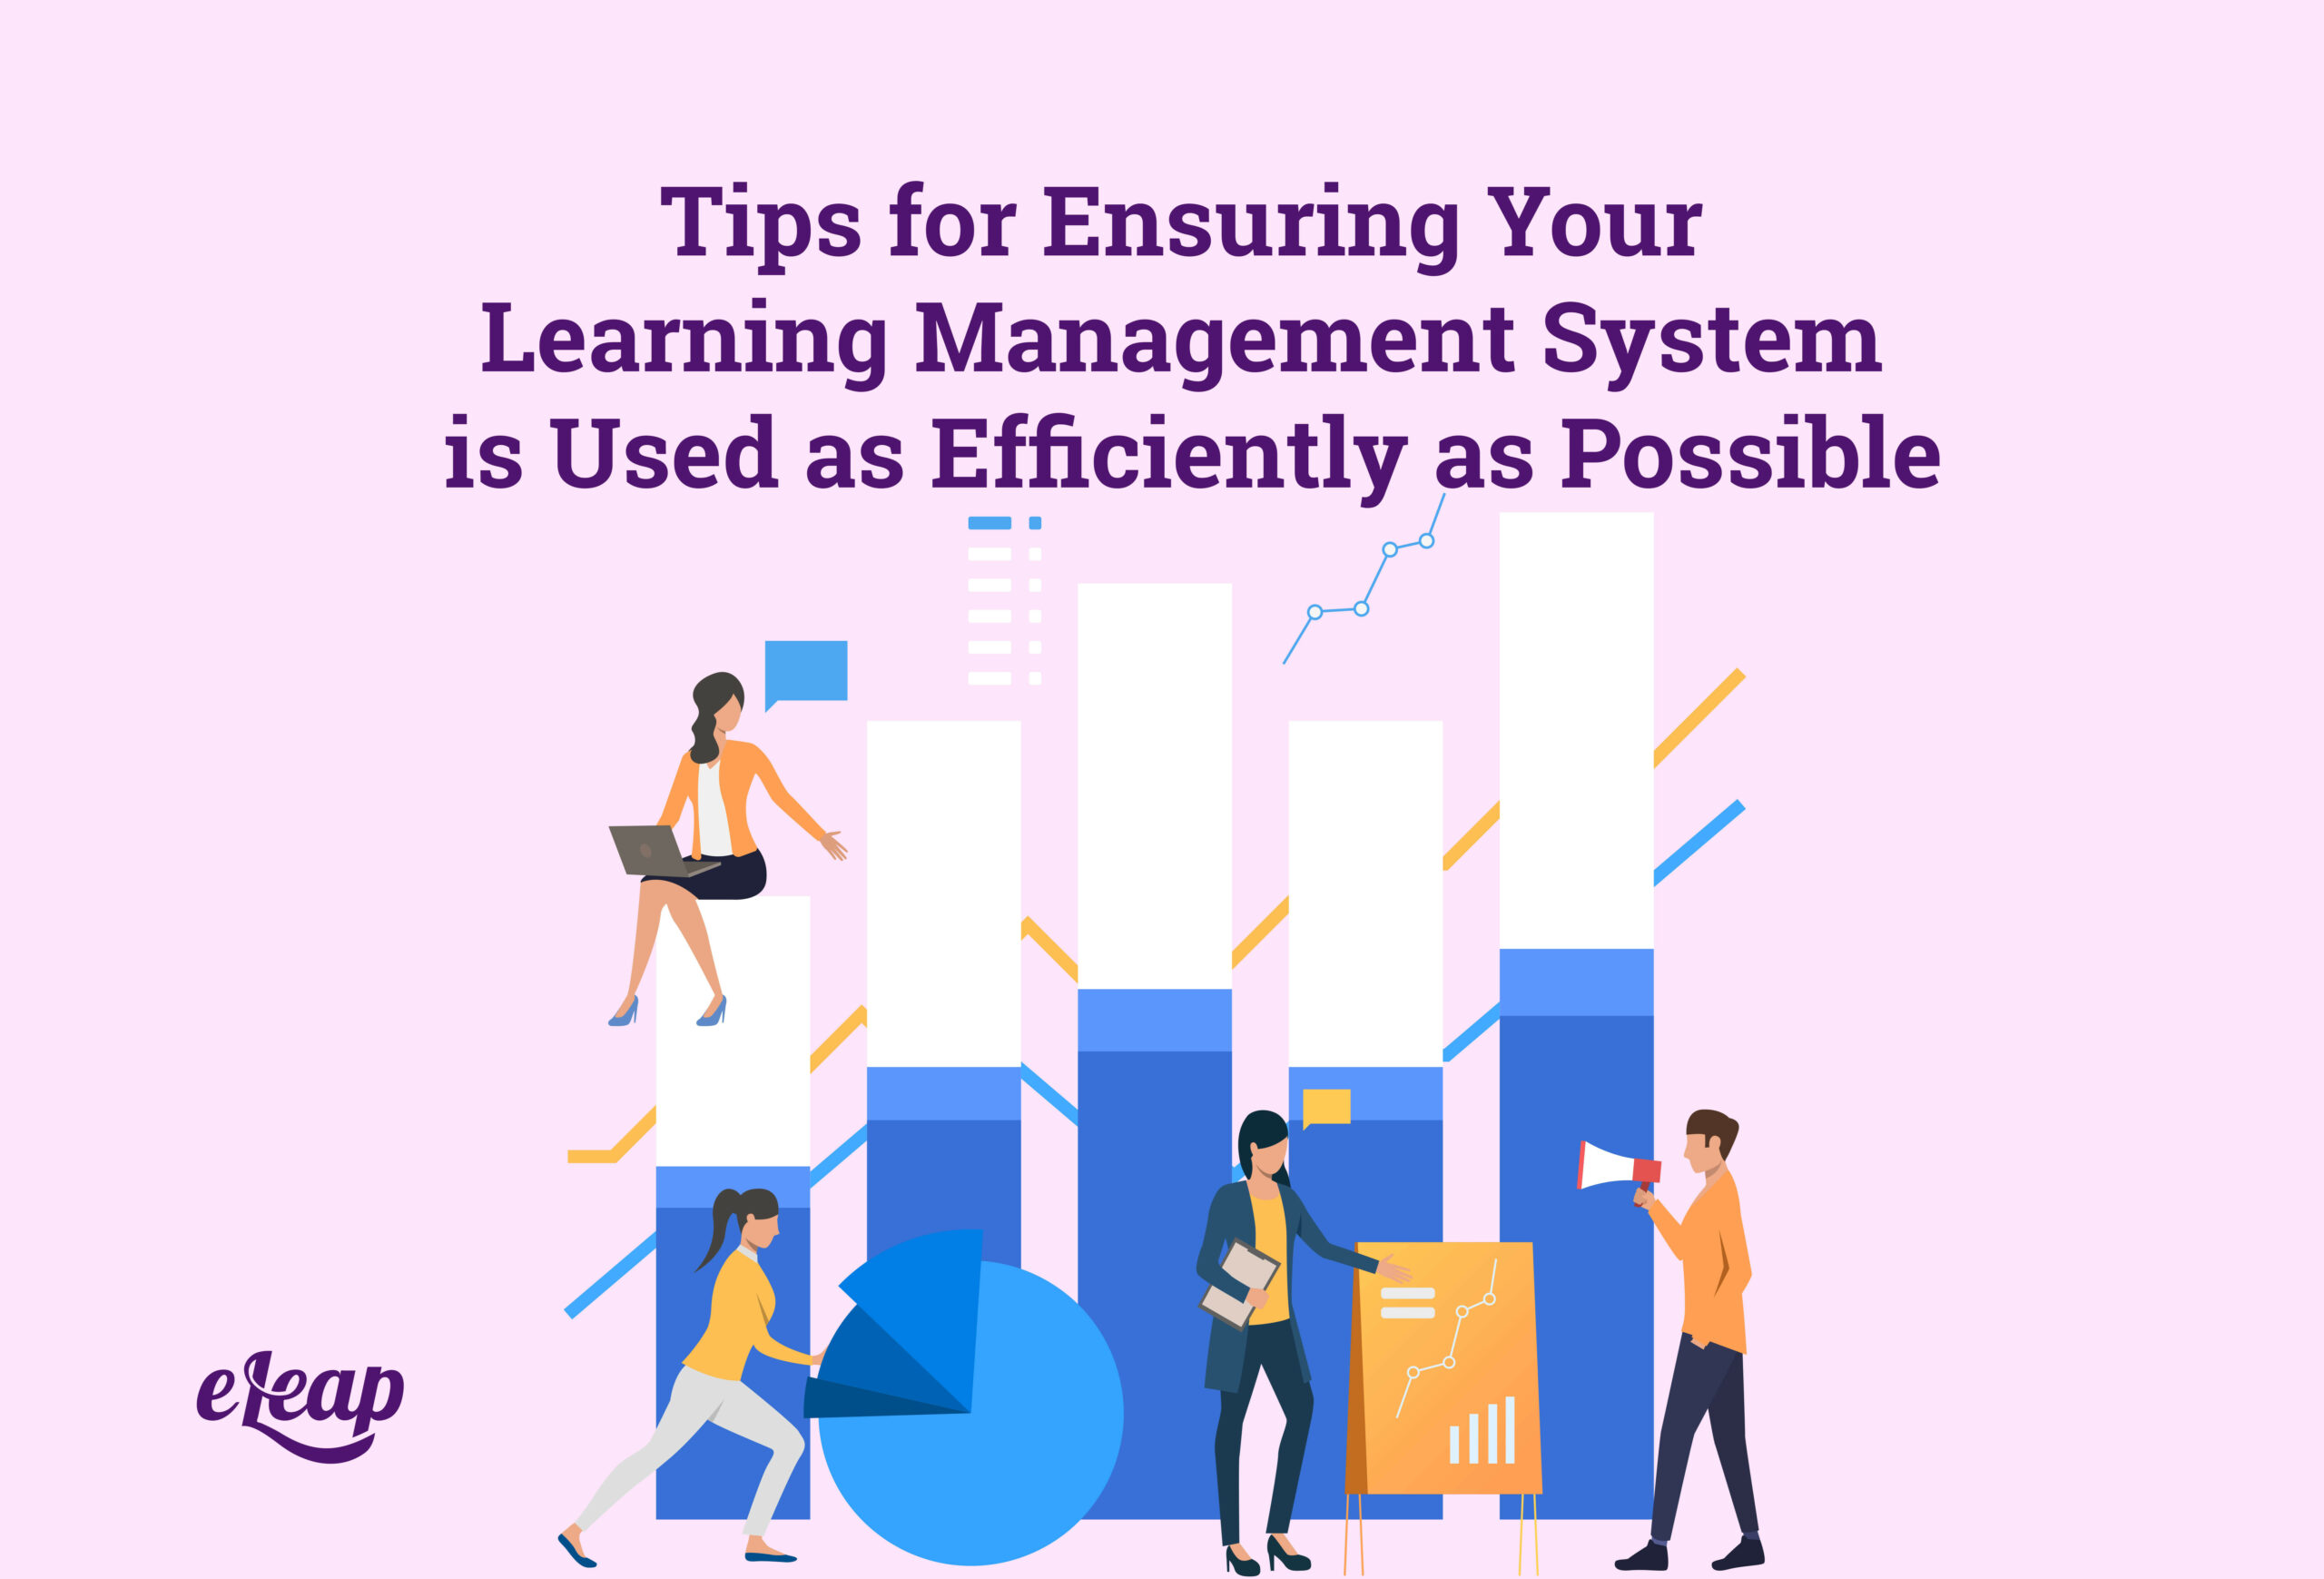 Tips for Ensuring Your Learning Management System is Used as Efficiently as Possible